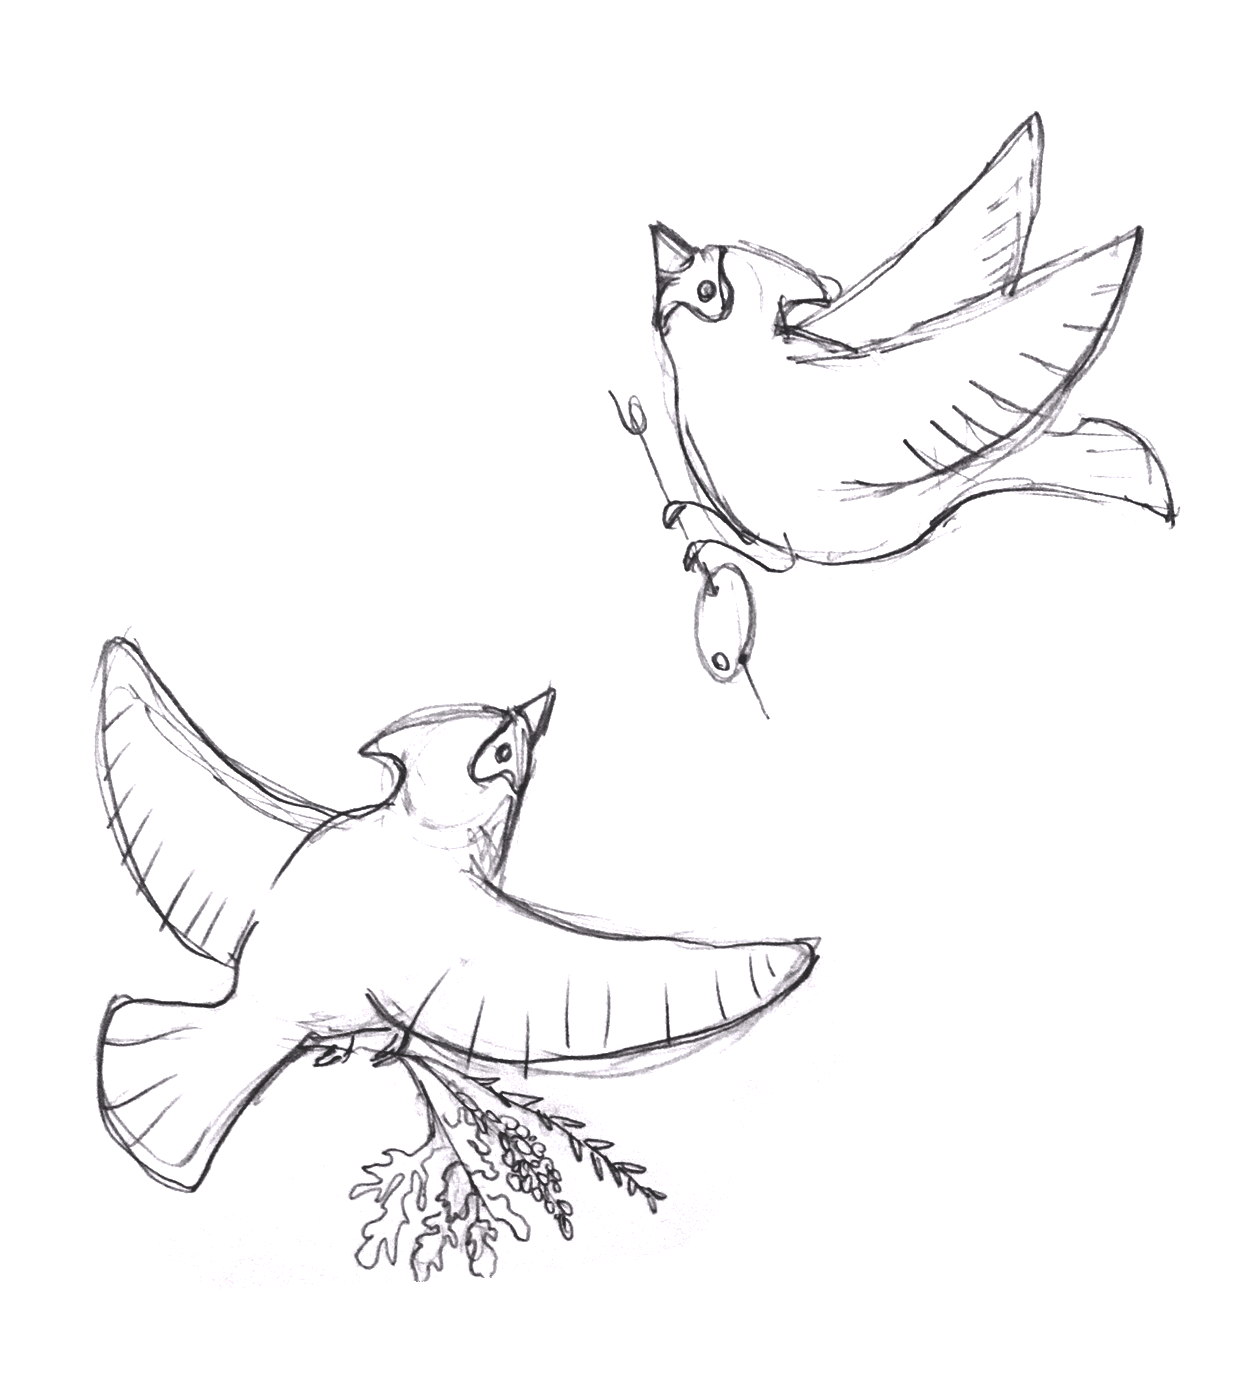 Sketches - These are a few of the preliminary sketches I created for the flight board illustrations. The cardinals were pencil on paper and the botanicals bouquet is a digital sketch.